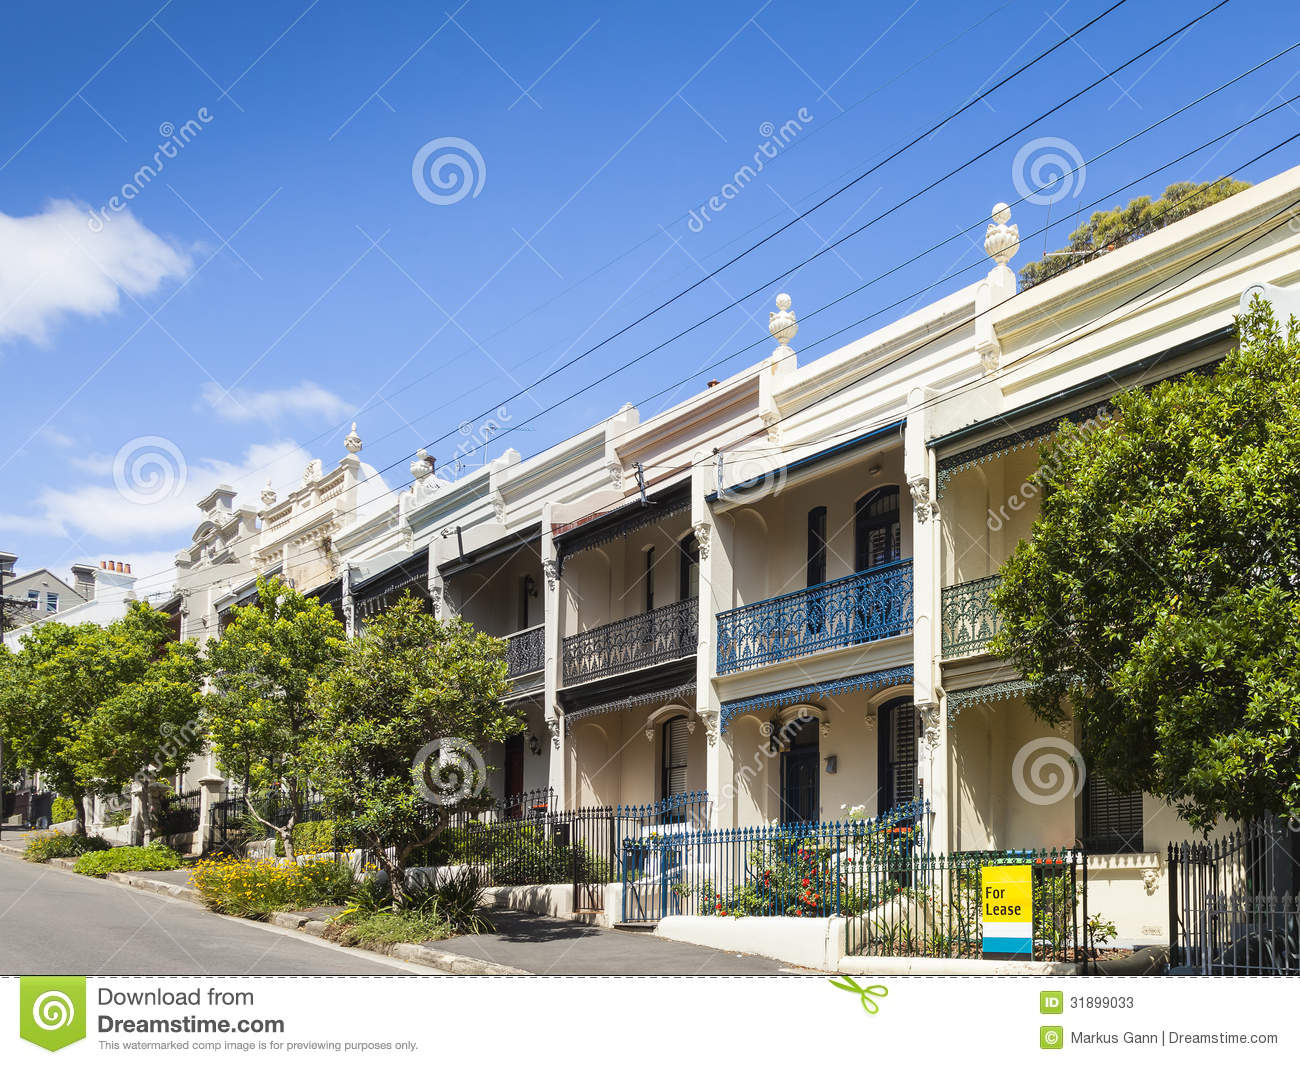 Terrace house paddington sydney stock photos image 31899033 for Terrace homes